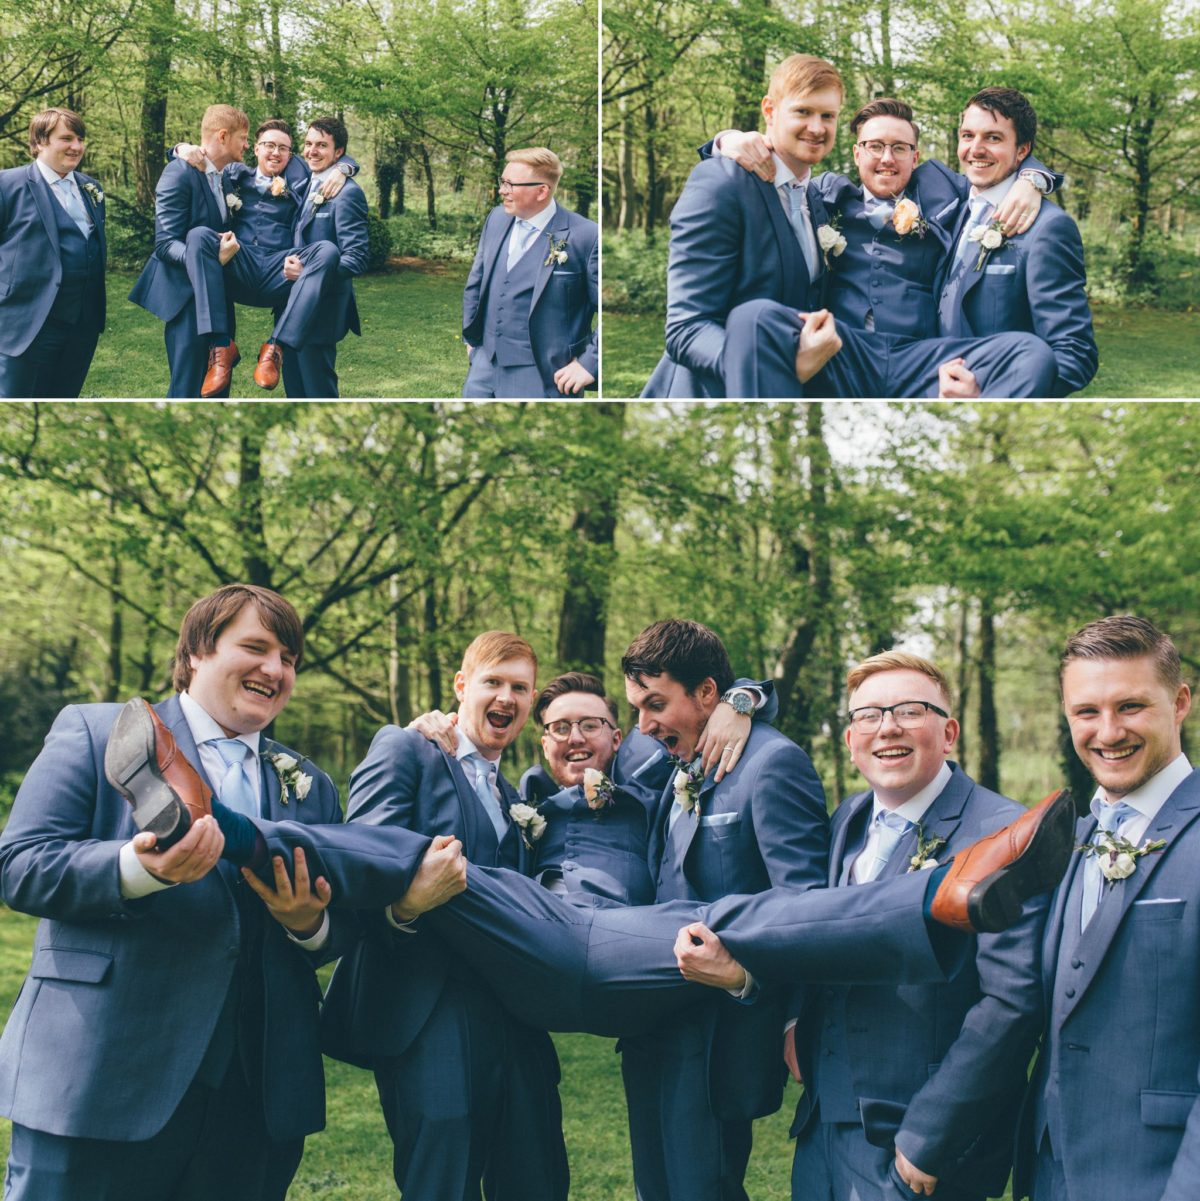 cripps_barn_gloucesterhsire_welsh_wedding_photographer_rachel_lambert_photography_jordan_amy_ 86